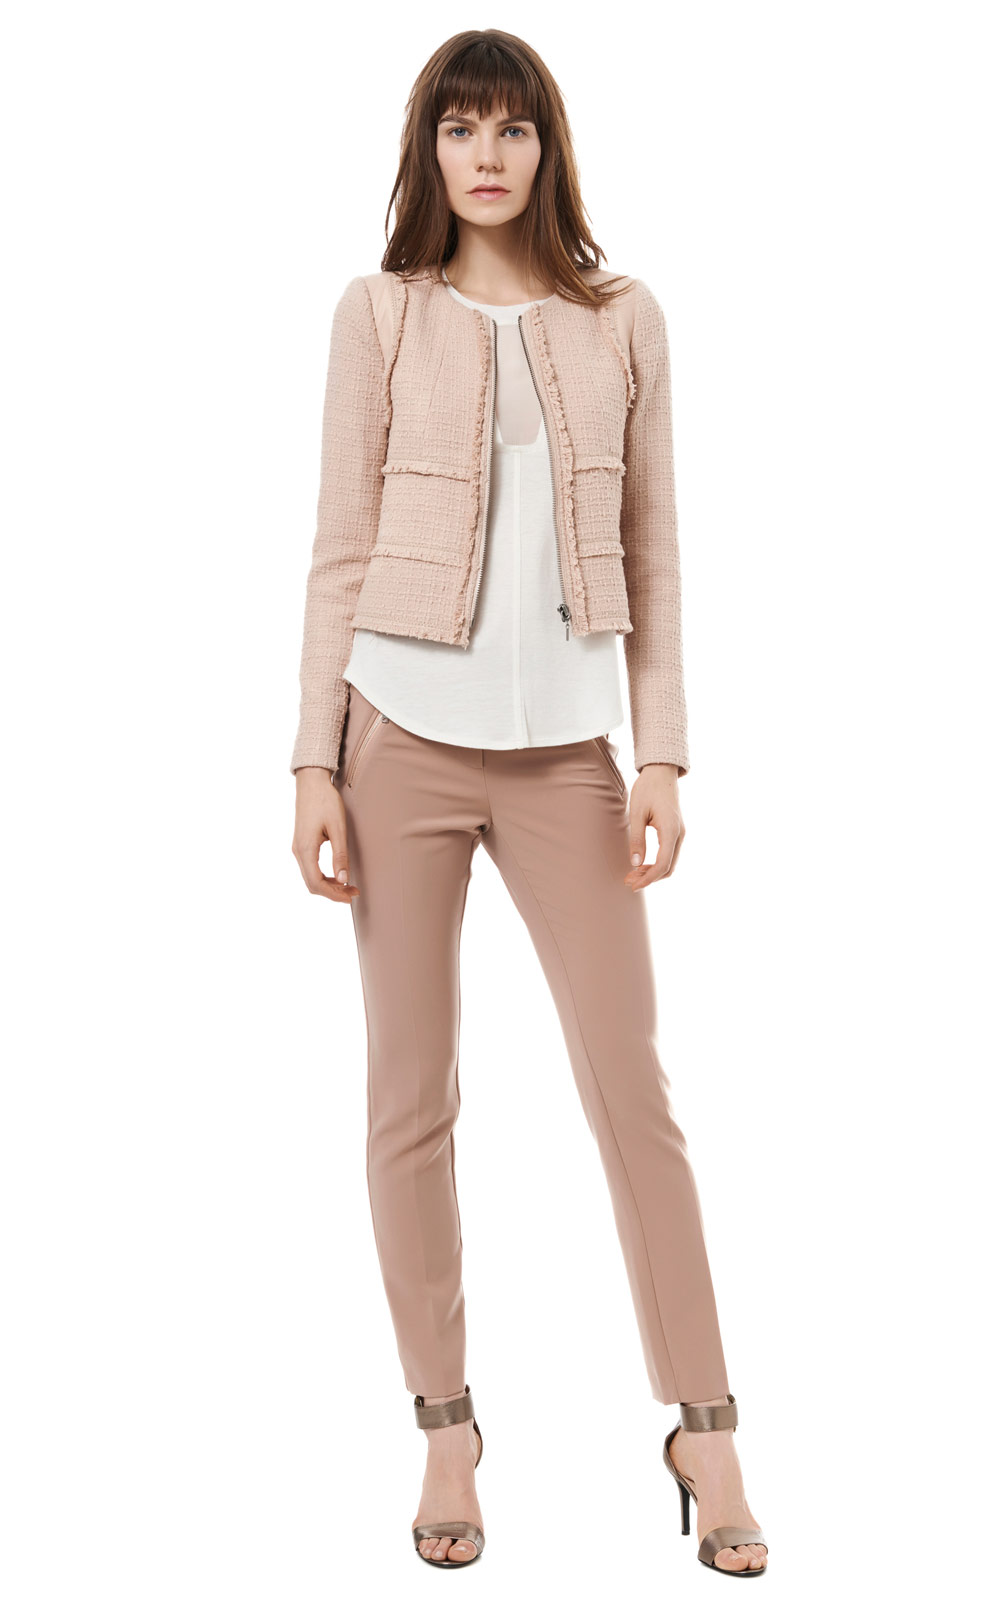 Rebecca Taylor Patched Tweed Jacket ($495)